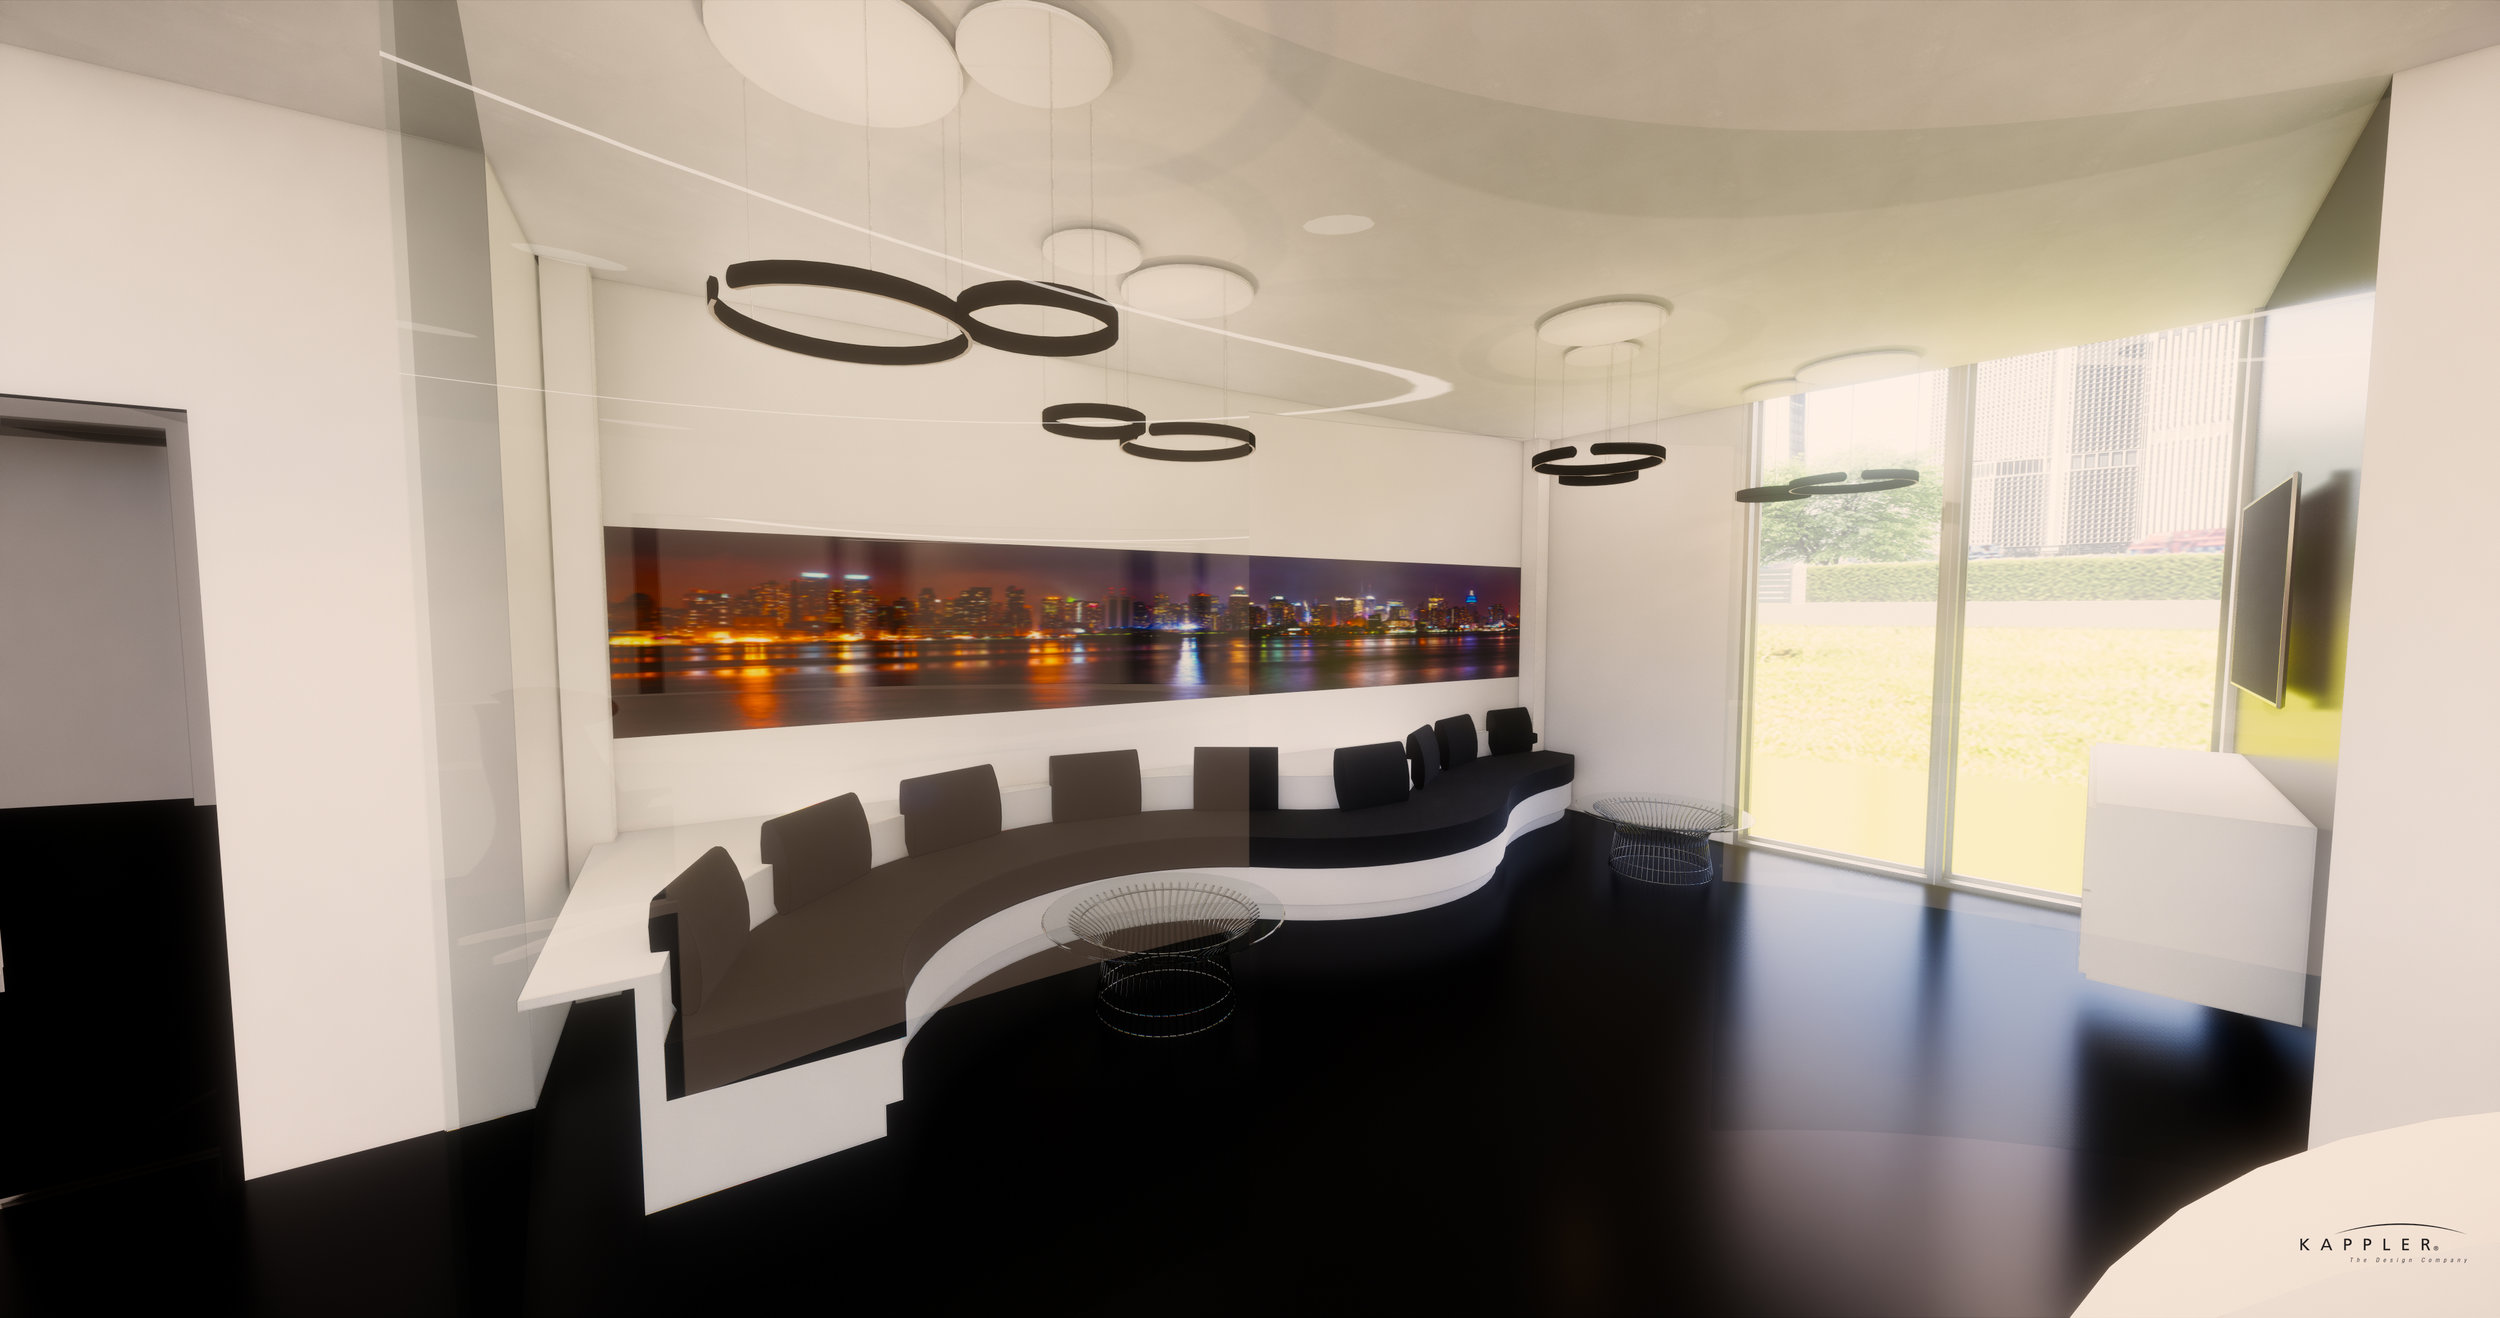 minimalist dental office waiting room with New York City skyline on the wall and polished black flooring